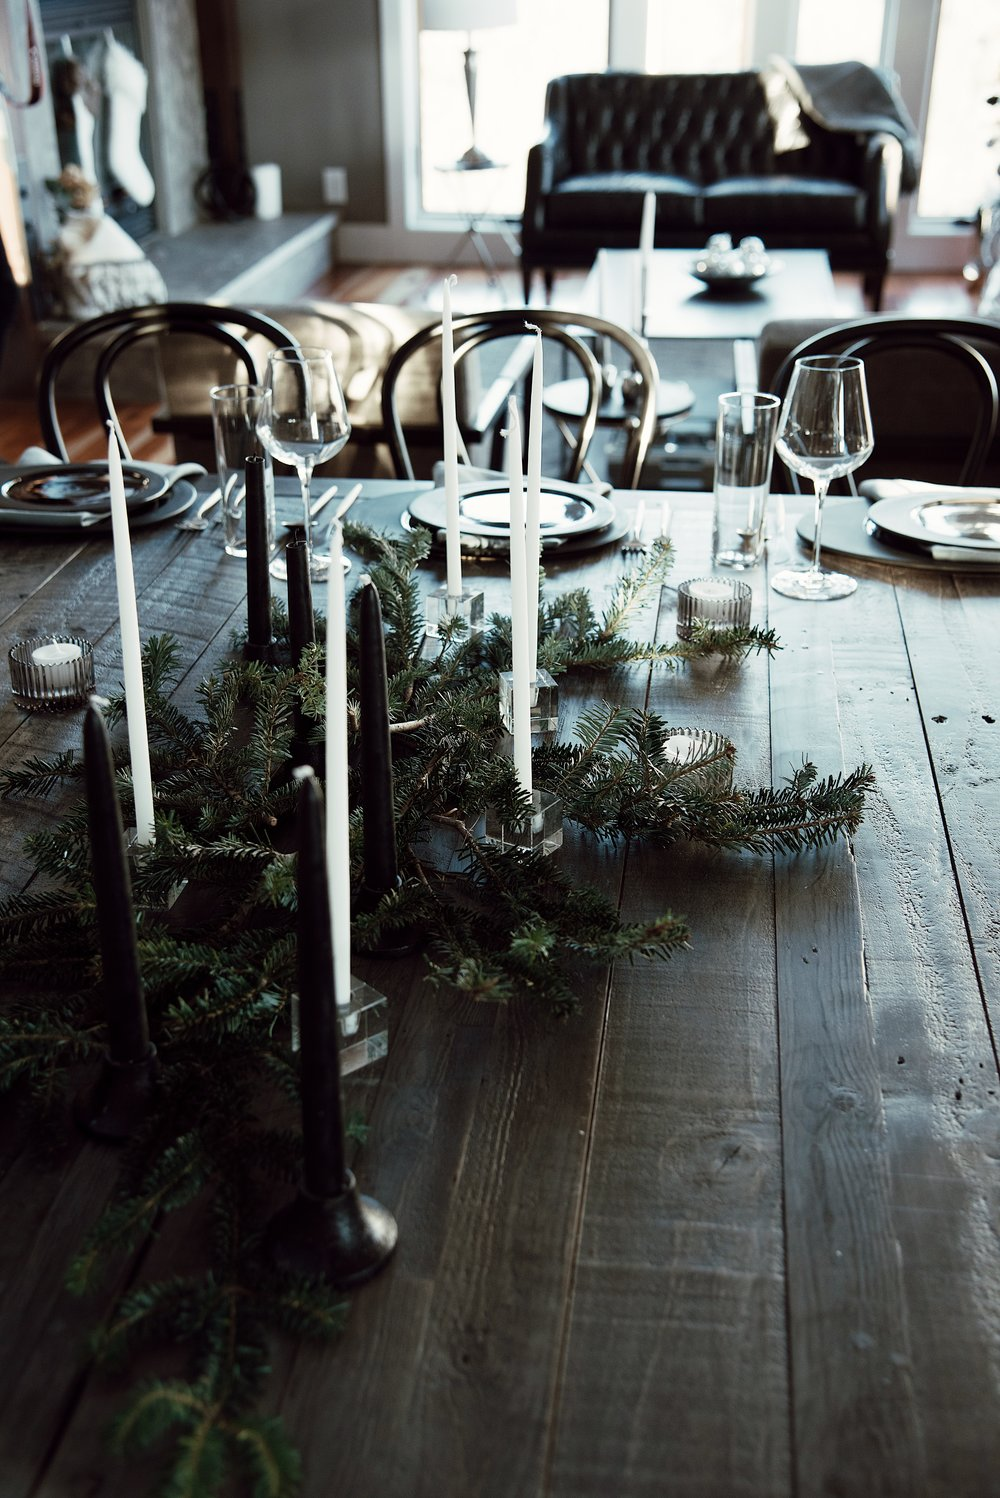 christmas-tree-getaway-winter-bright-interior-12th-table-decor-dinner-tablescape-home.jpg